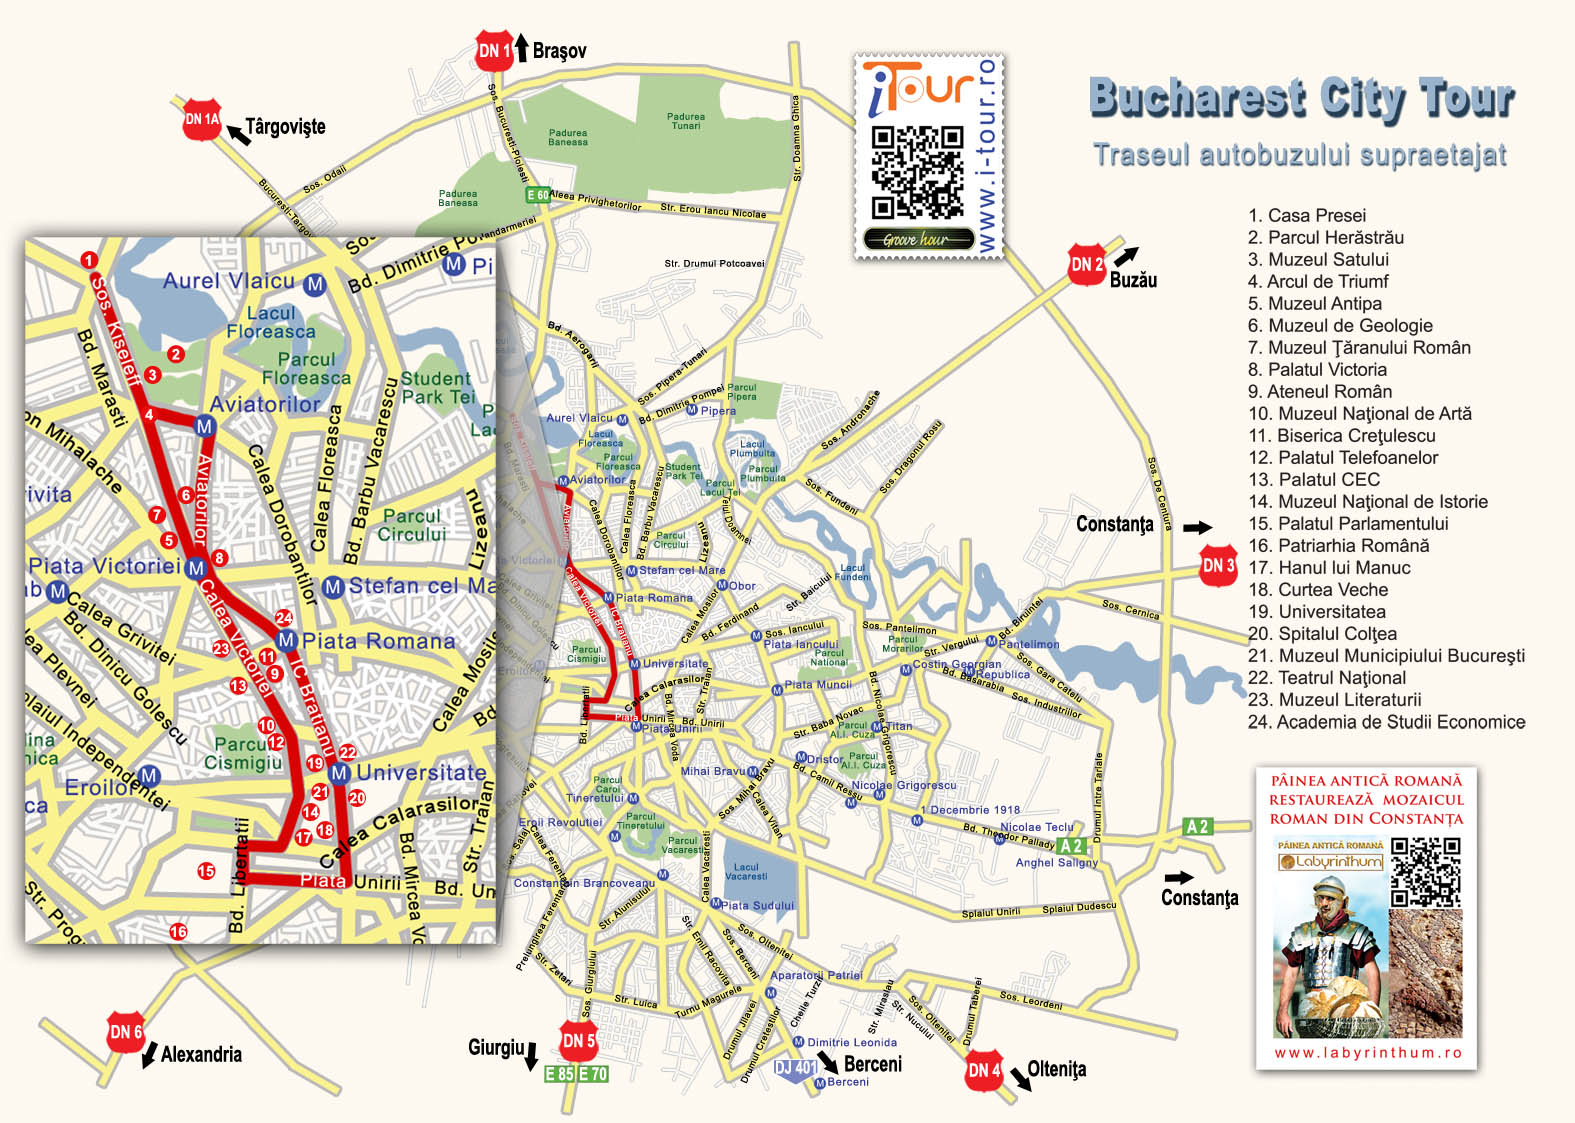 Bucharest City Tour, harta traseu autobuz suspendat